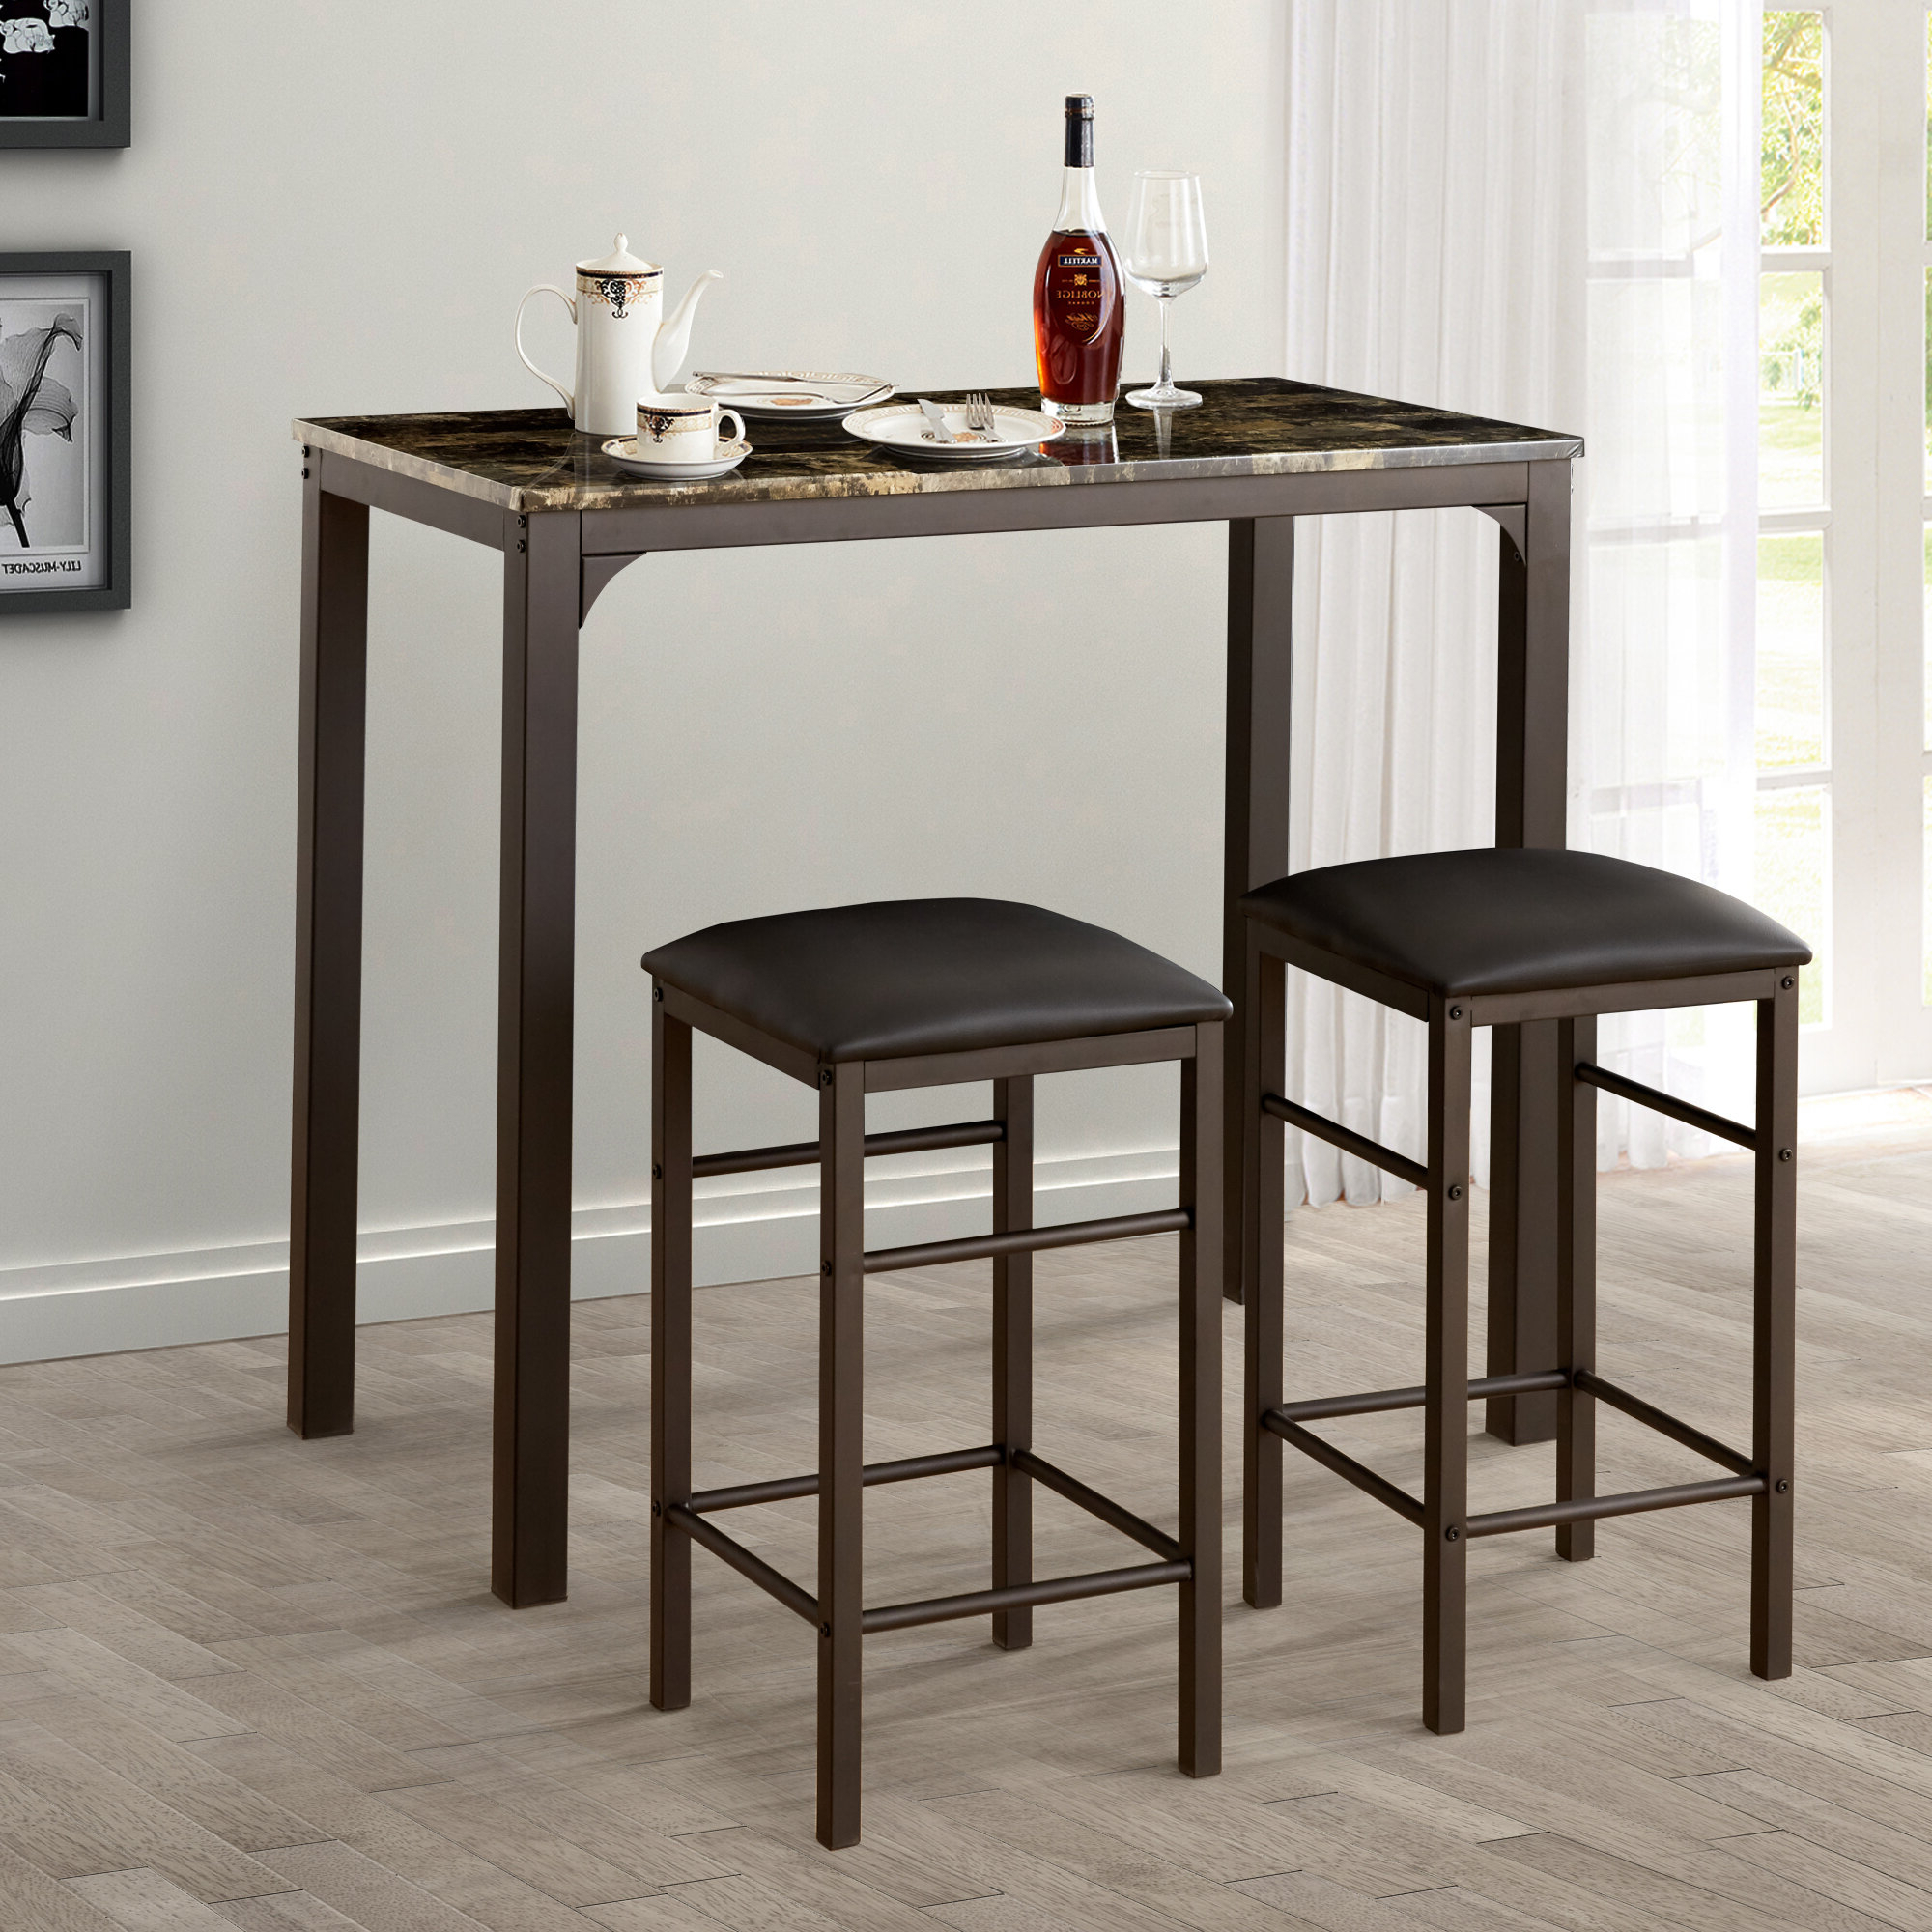 Lillard 3 Piece Breakfast Nook Dining Set For Latest Miskell 3 Piece Dining Sets (View 3 of 20)